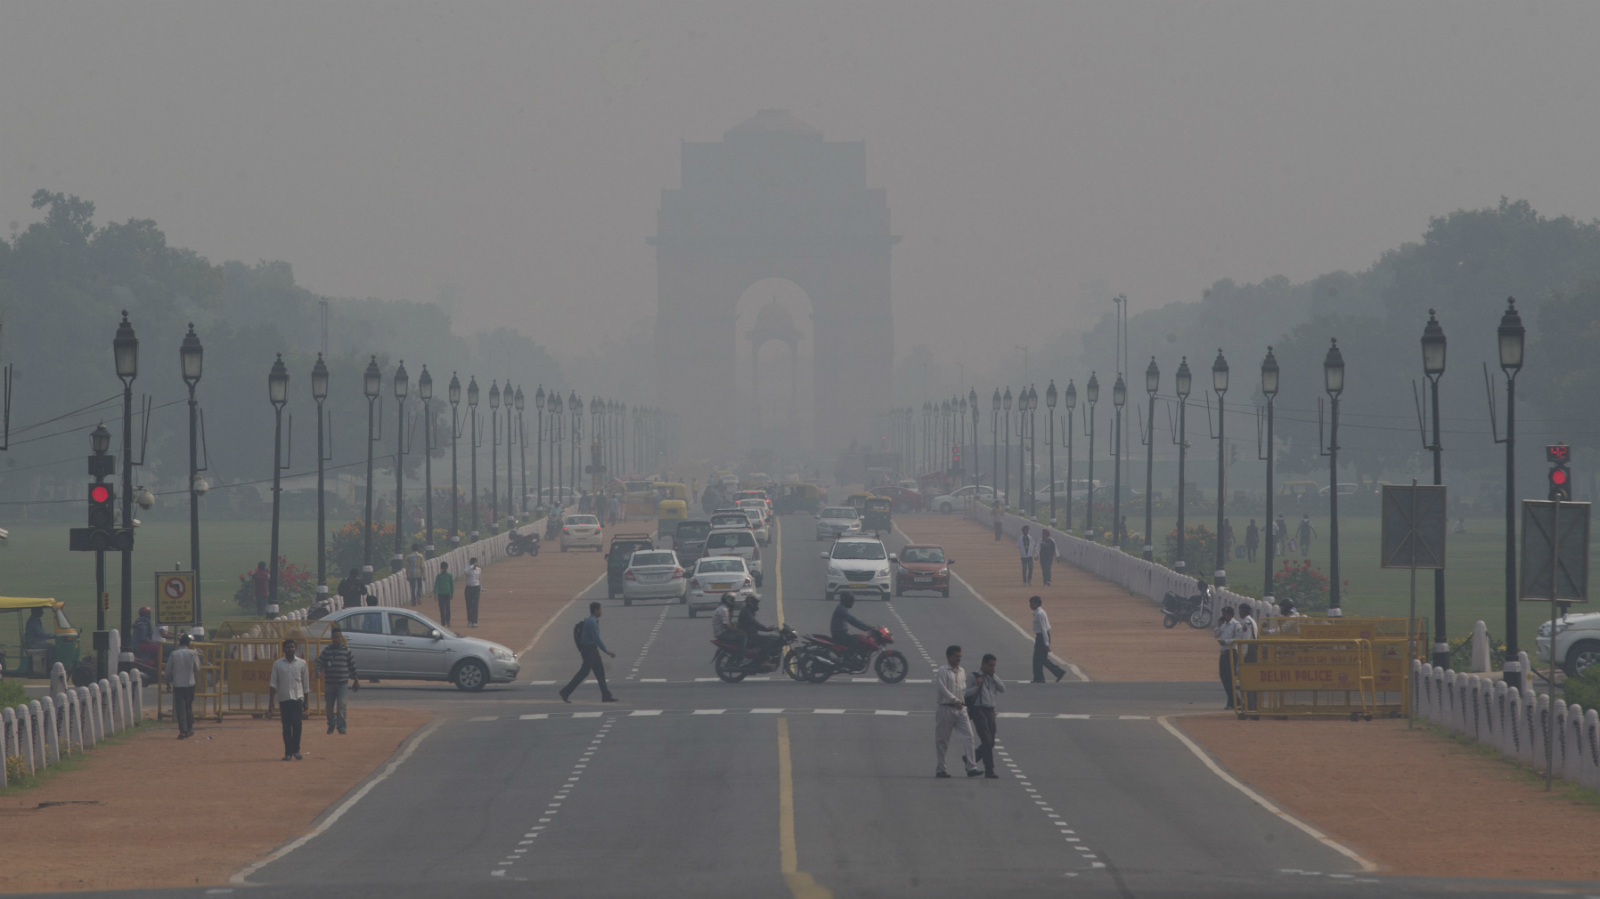 India Gate, one of the landmarks of central Delhi, is barely visible through thick smog in New Delhi, India, Monday, Nov. 9, 2015. Delhi's air quality has been hitting new lows over the past week and authorities are urging people to refrain from lighting smoke emanating firecrackers during the upcoming Diwali festival.